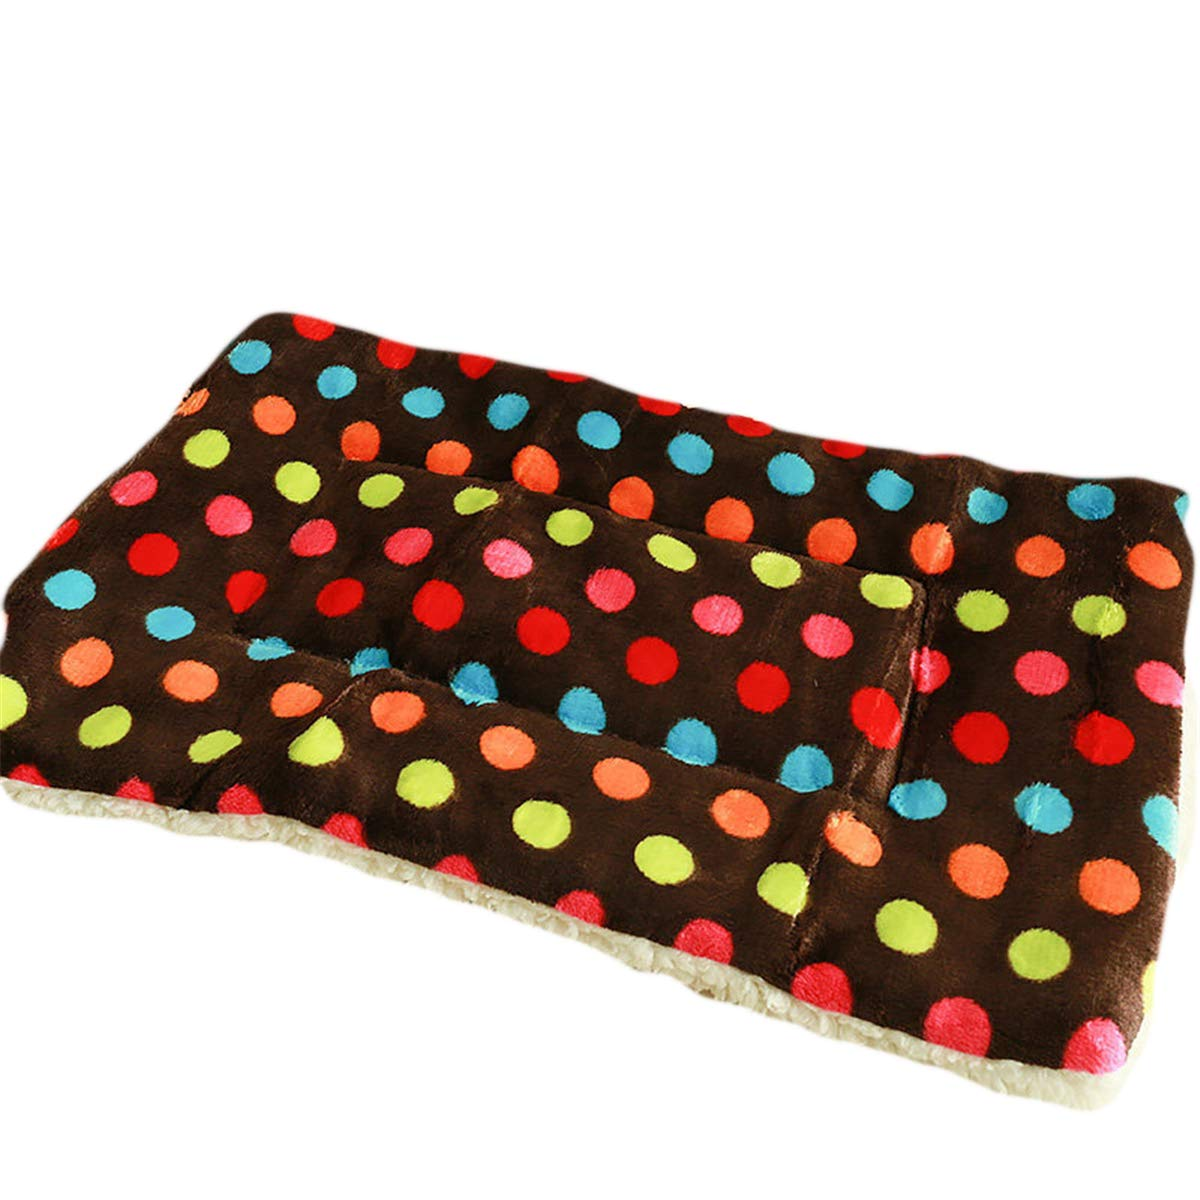 Brown Polka dots XL-39.529.52inch Brown Polka dots XL-39.529.52inch ALLNEO Deluxe Pet Beds Super Plush Dog & Cat Beds Ideal for Dog Crates Bed Ultra Soft Crate Pad Home Washable Mat for Dogs and Cats Crate